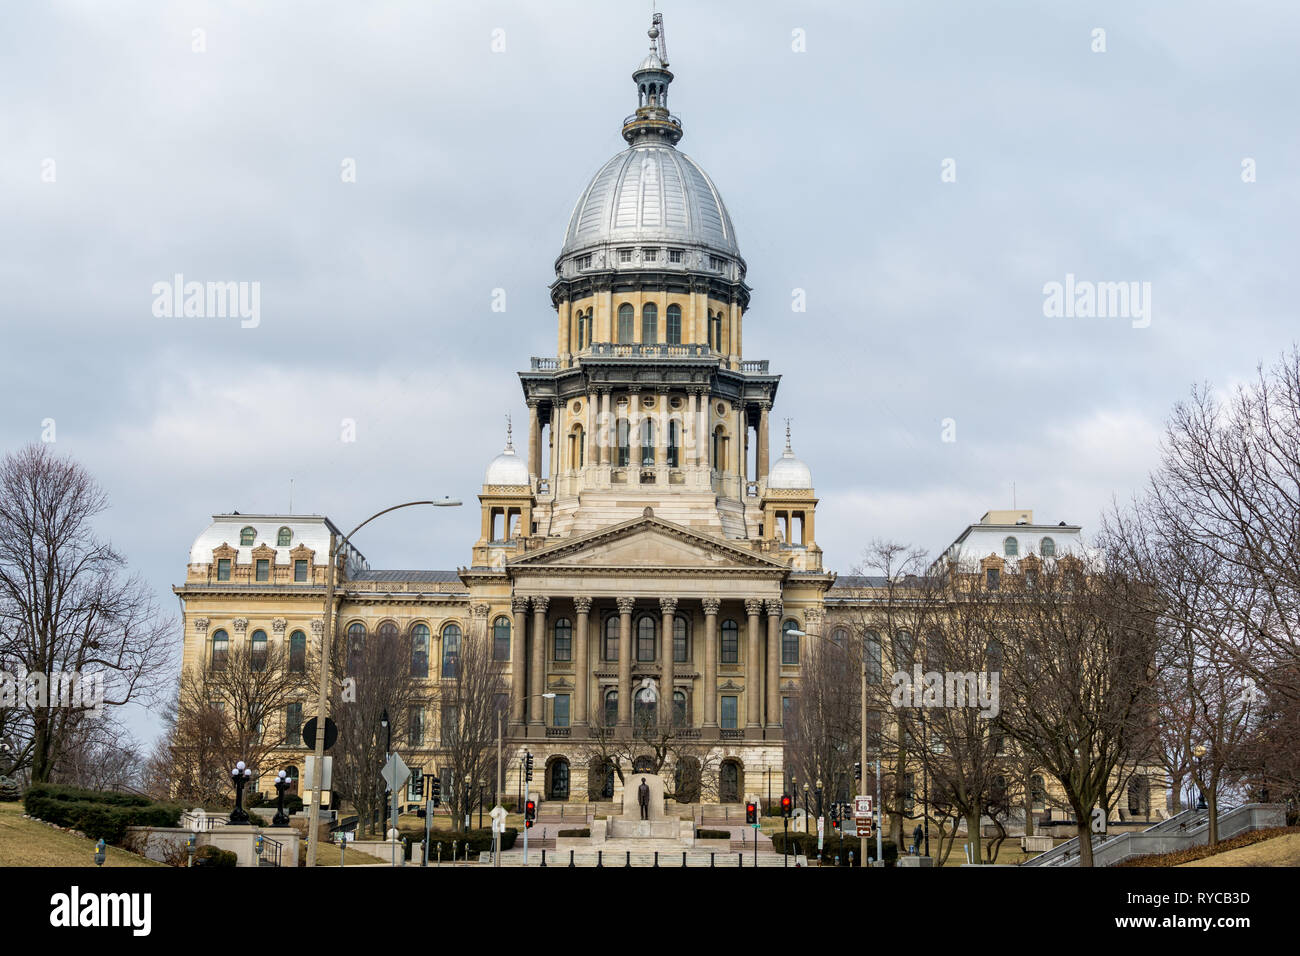 Morning light on the state capitol building in Springfield, Illinoi - Stock Image